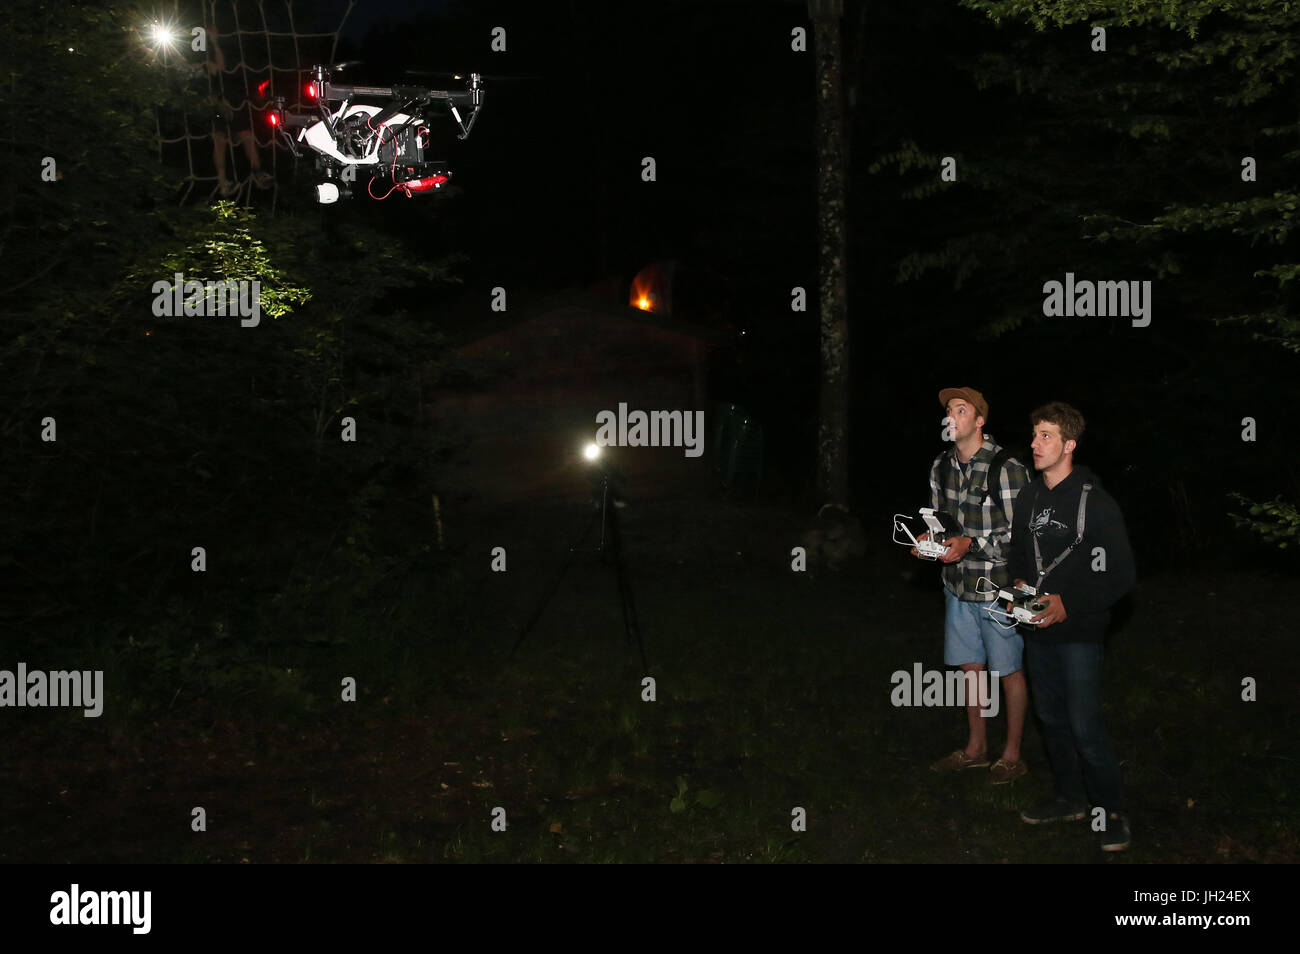 Pilots operating a drone with a camera at night. France. - Stock Image